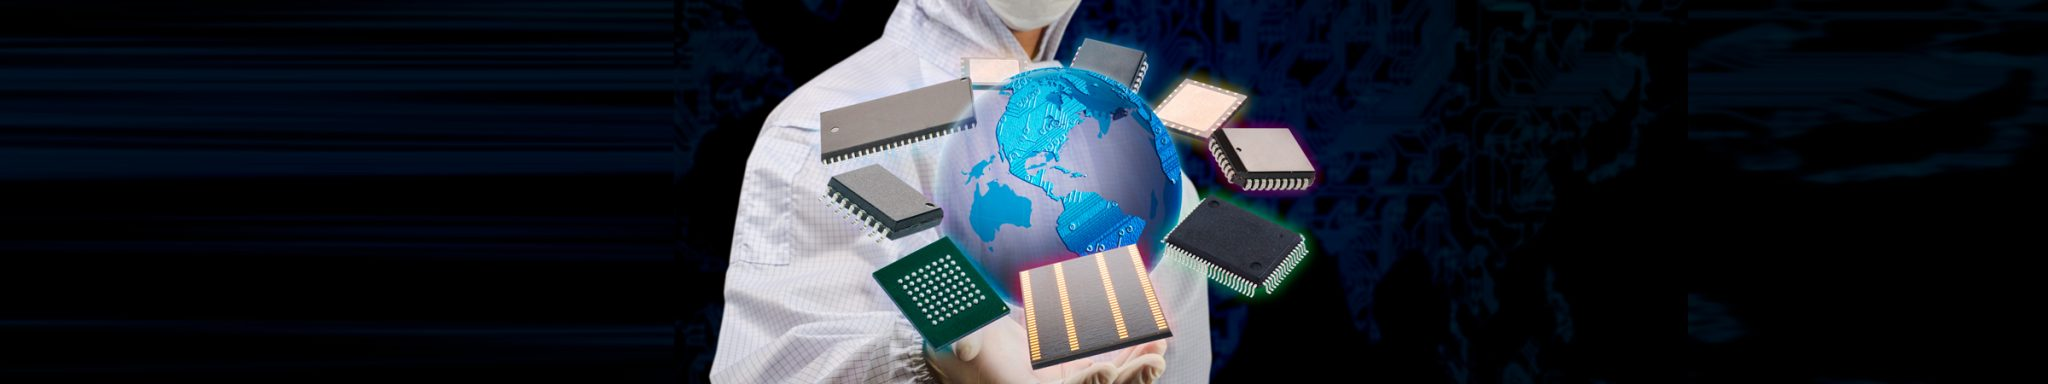 Photomask, nano chips and components